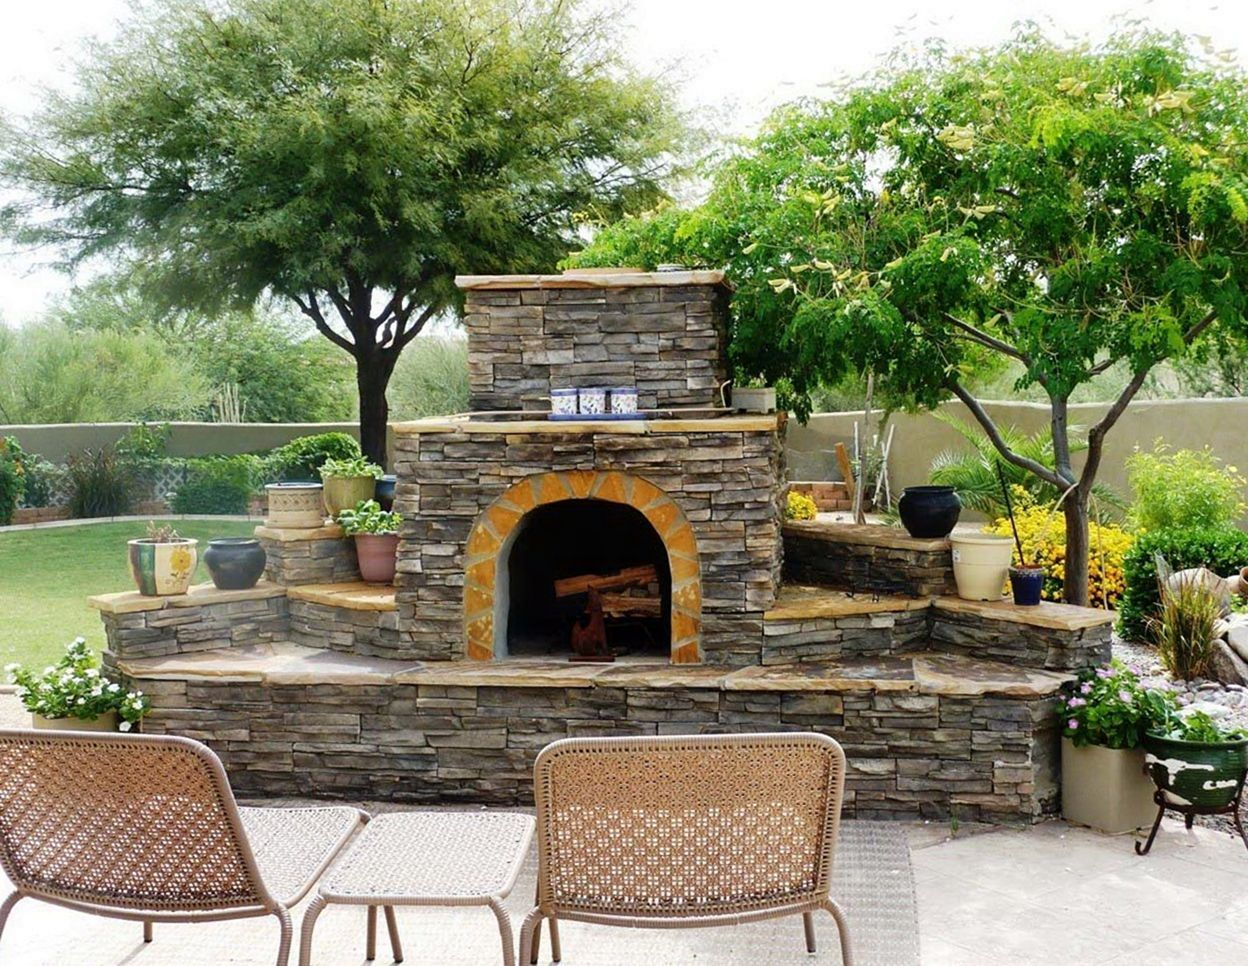 15 Amazing Outdoor Fireplace Design Ideas For Your ... on Amazing Outdoor Fireplaces  id=41877